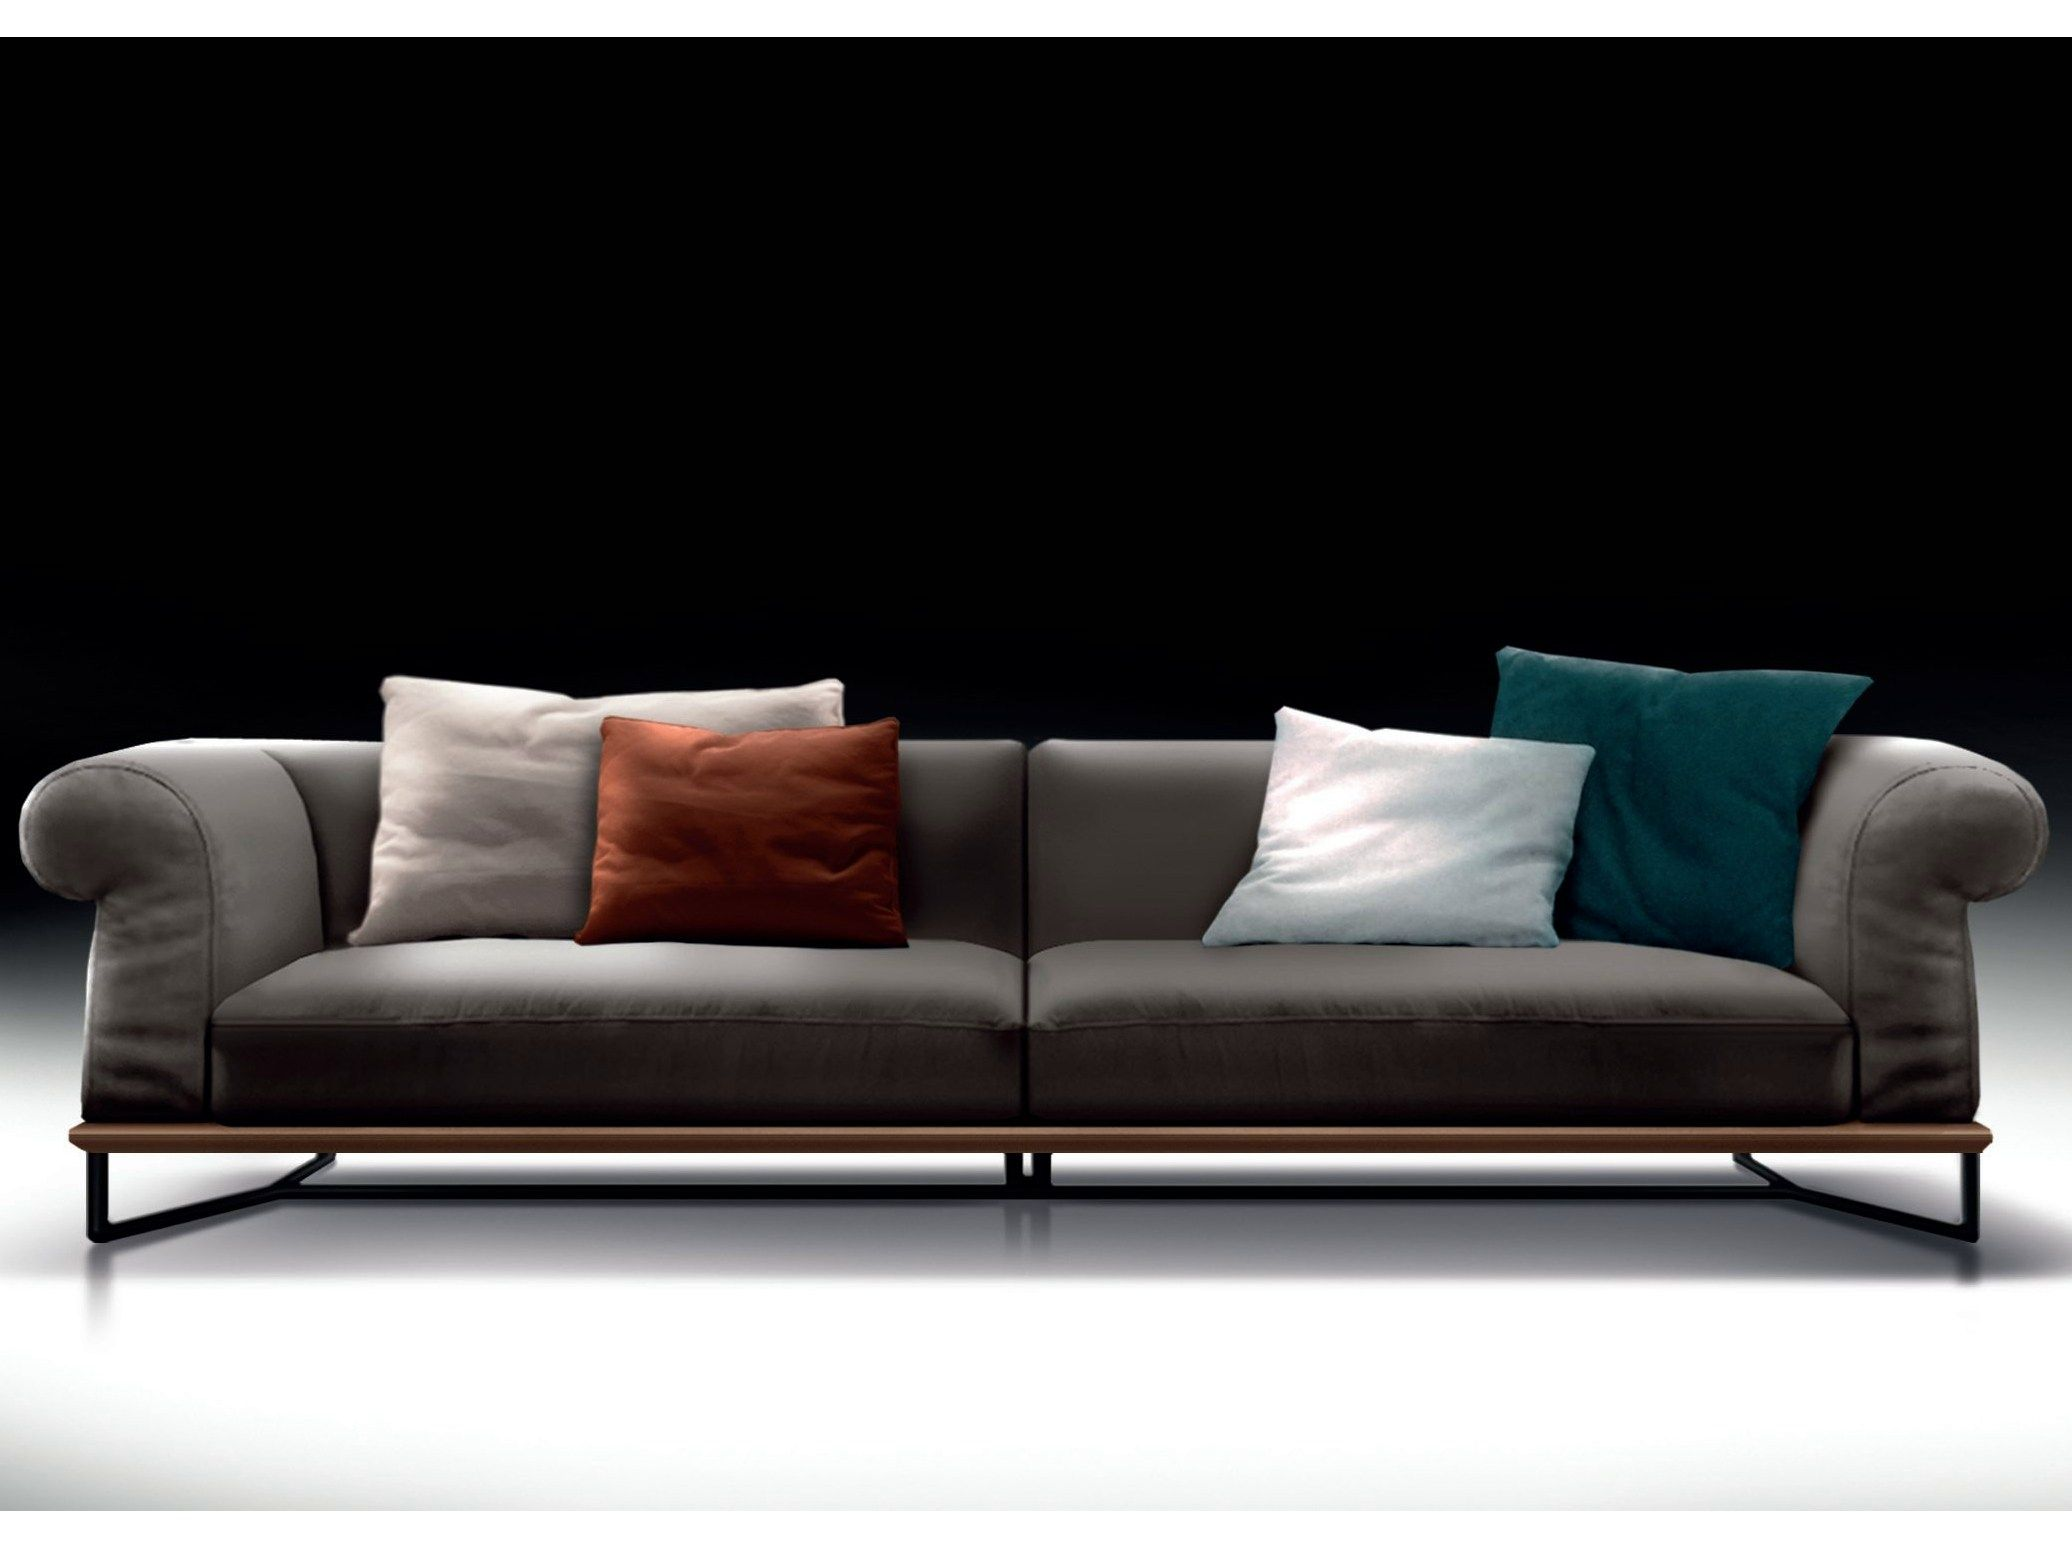 Divano In Pelle Vivaldi By Esedra By Prospettive Design Studio Memo Leather Sofa Sofa Furniture Upholstered Furniture